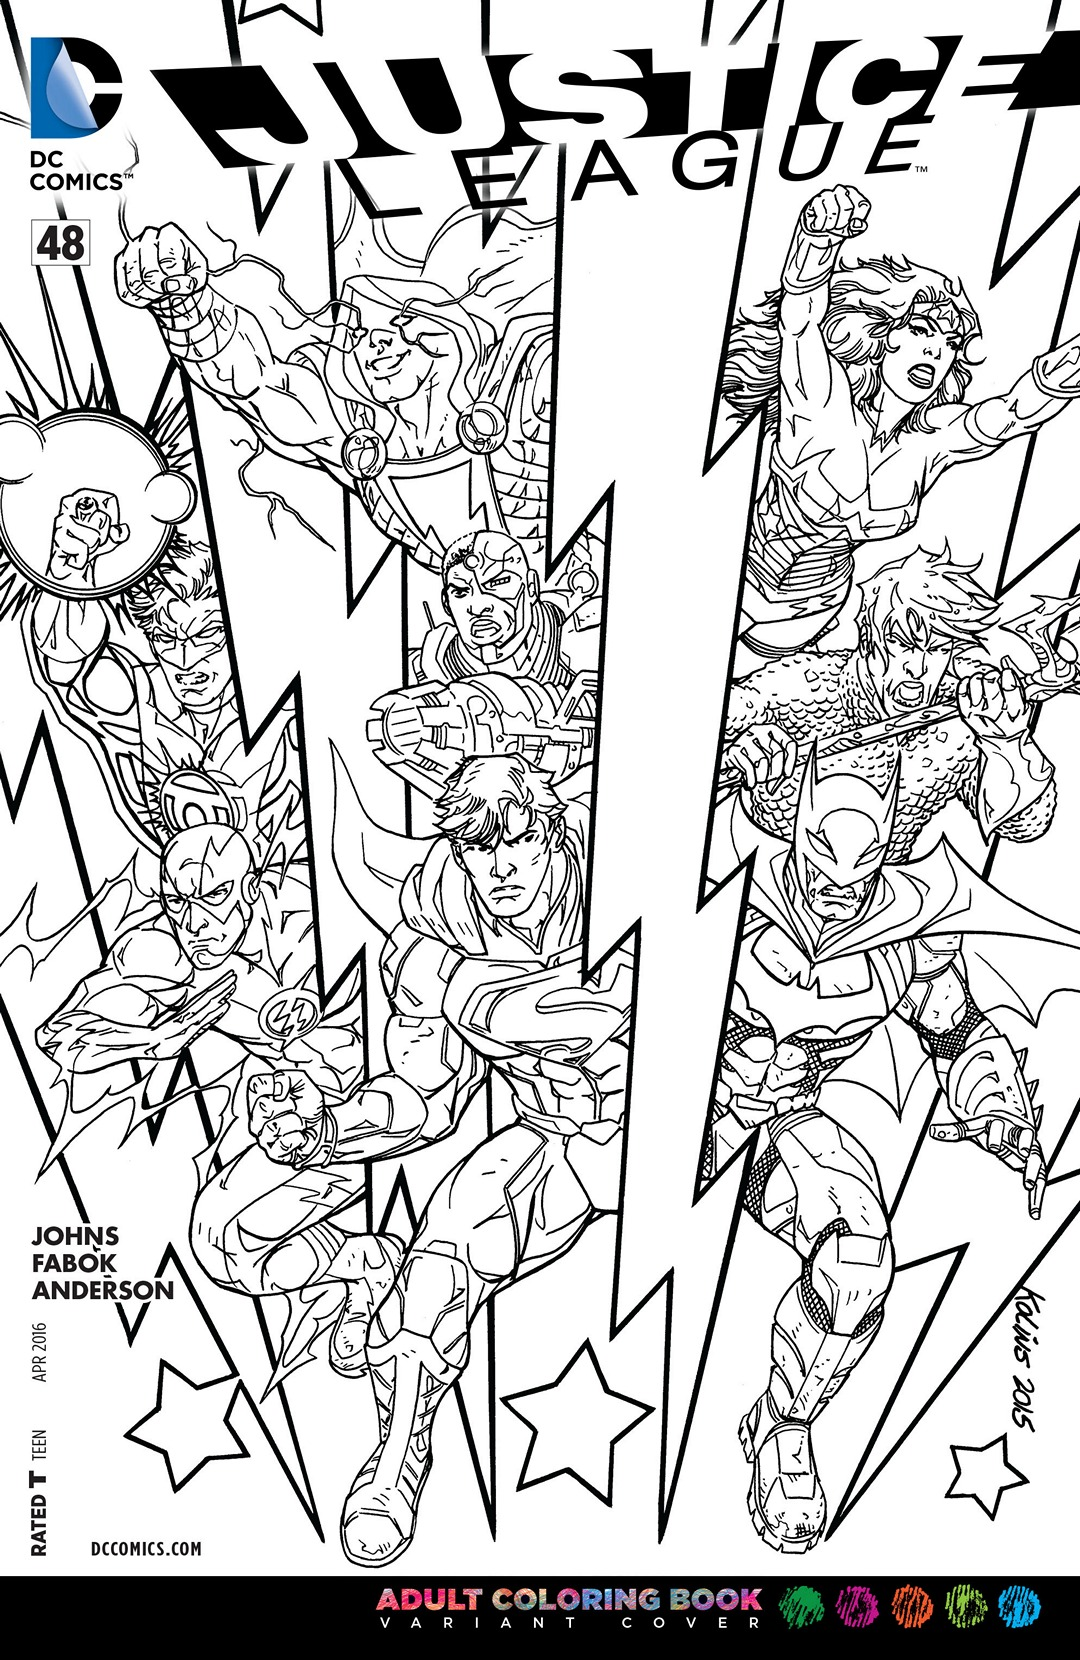 Image - Justice League Vol 2 48 Adult Coloring Book Variant.jpg | DC ...